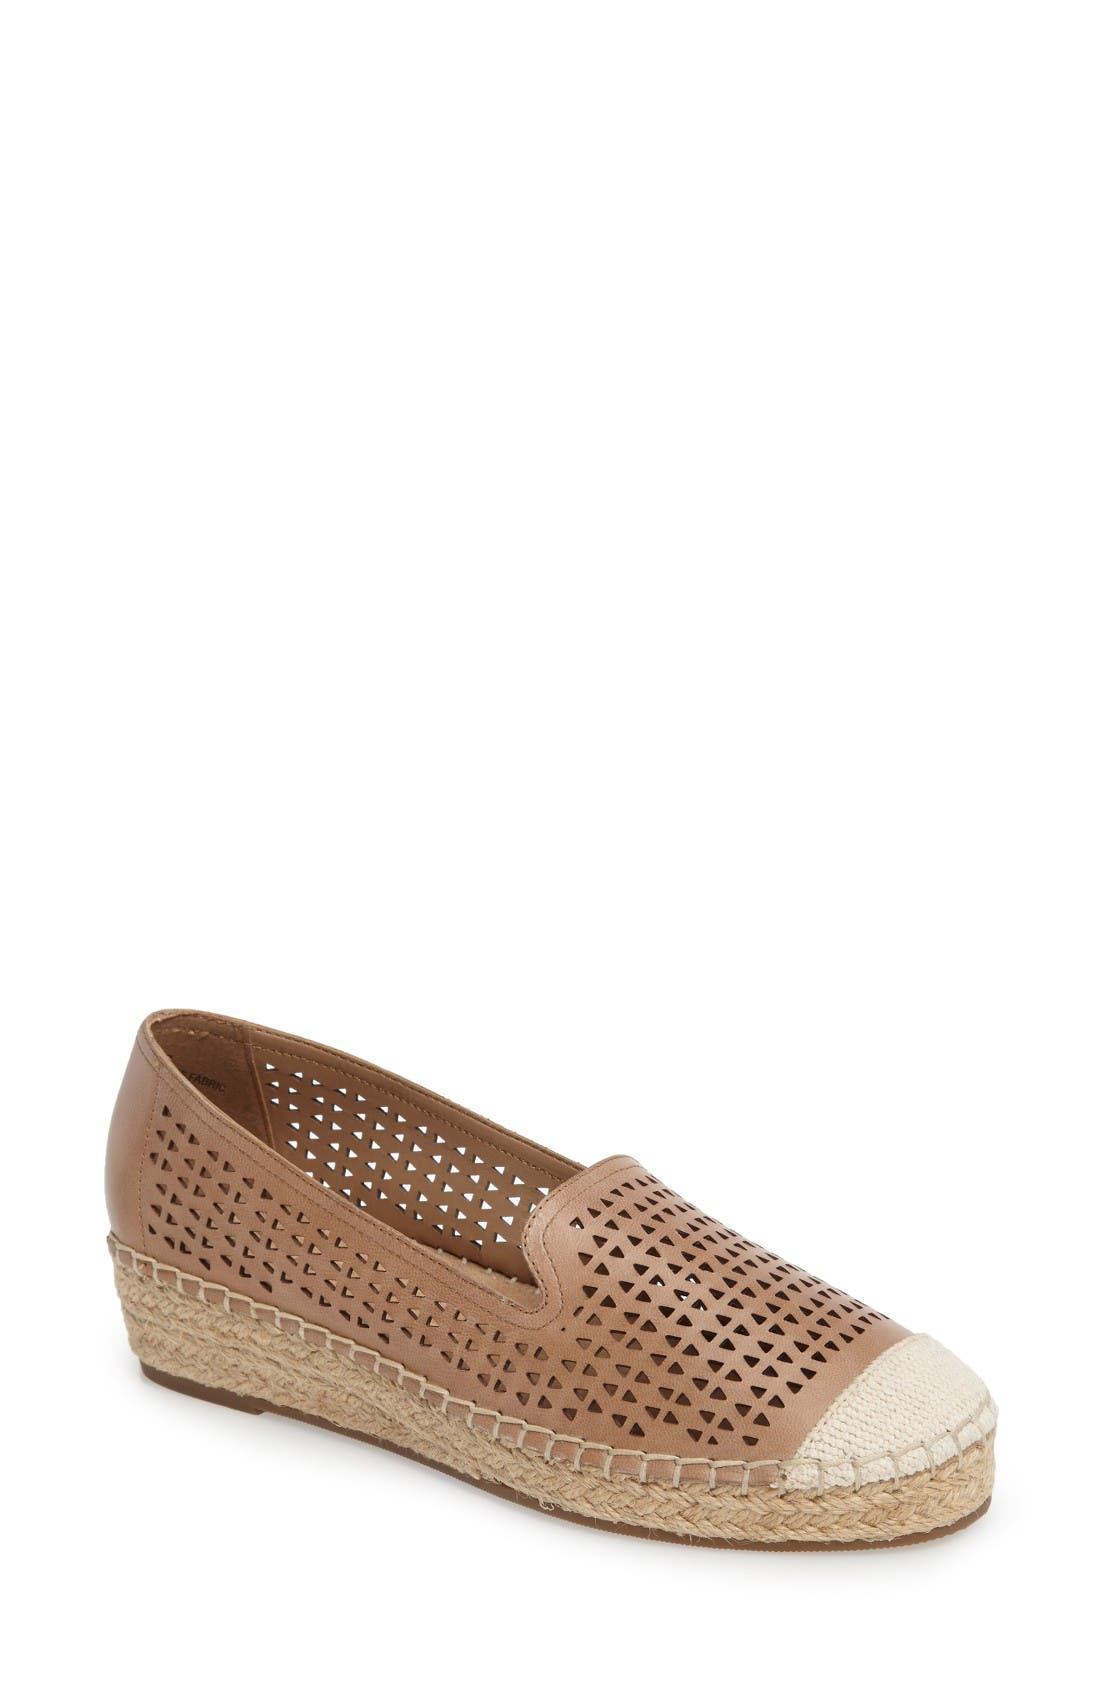 Channing Cutout Espadrille Loafer,                             Main thumbnail 1, color,                             Saddle Leather